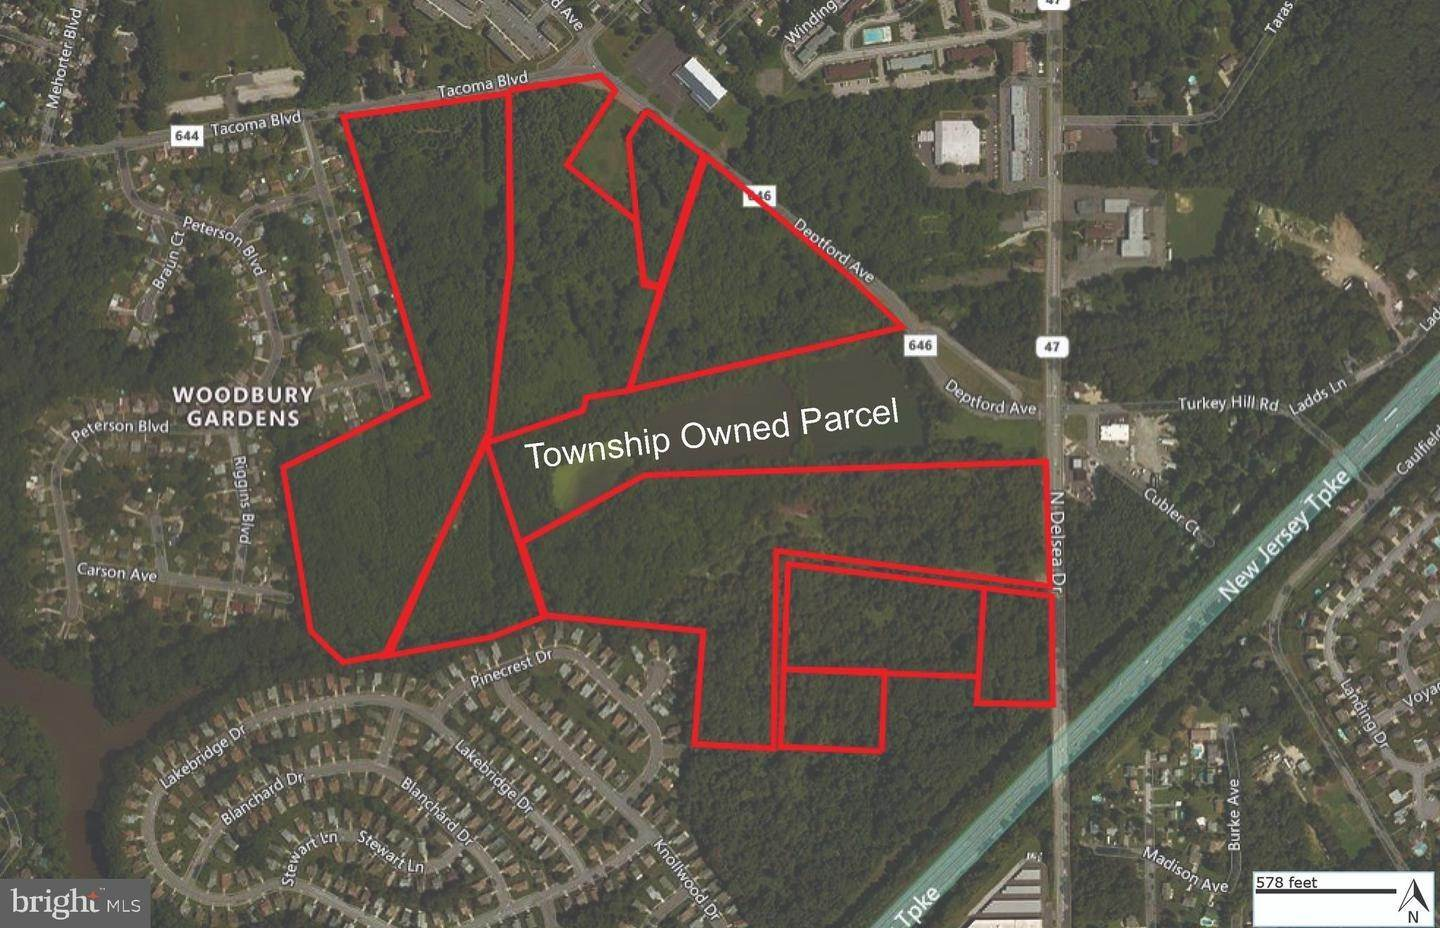 Land / Commercial for Sale at 1270 DELSEA Drive Woodbury, New Jersey 08096 United States